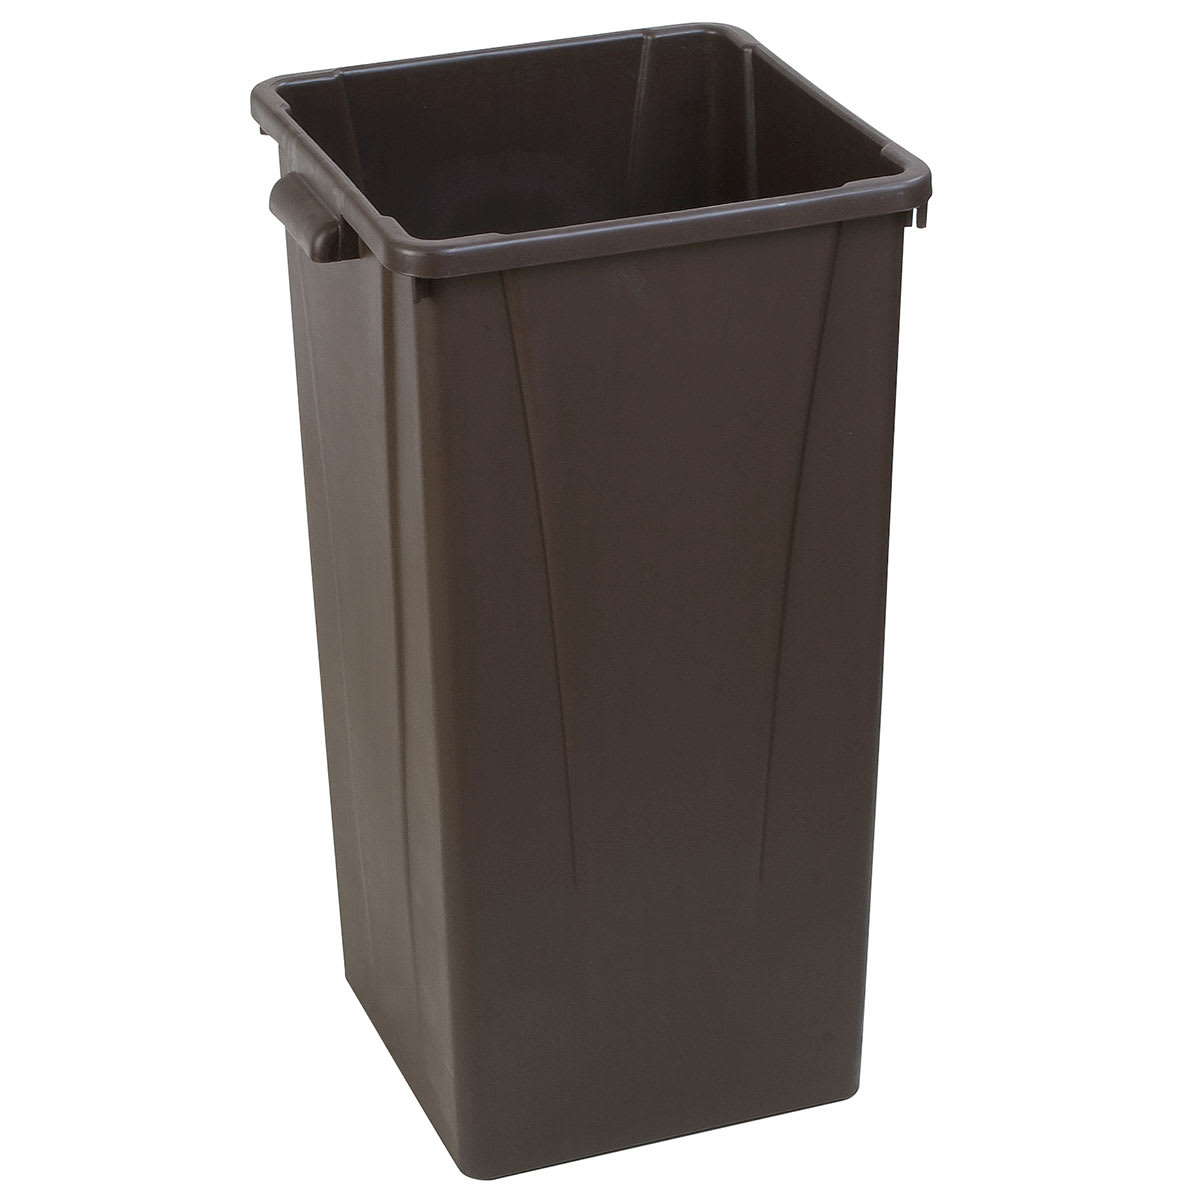 Carlisle 34352369 23-gallon Commercial Trash Can - Plastic, Square, Built-in Handles